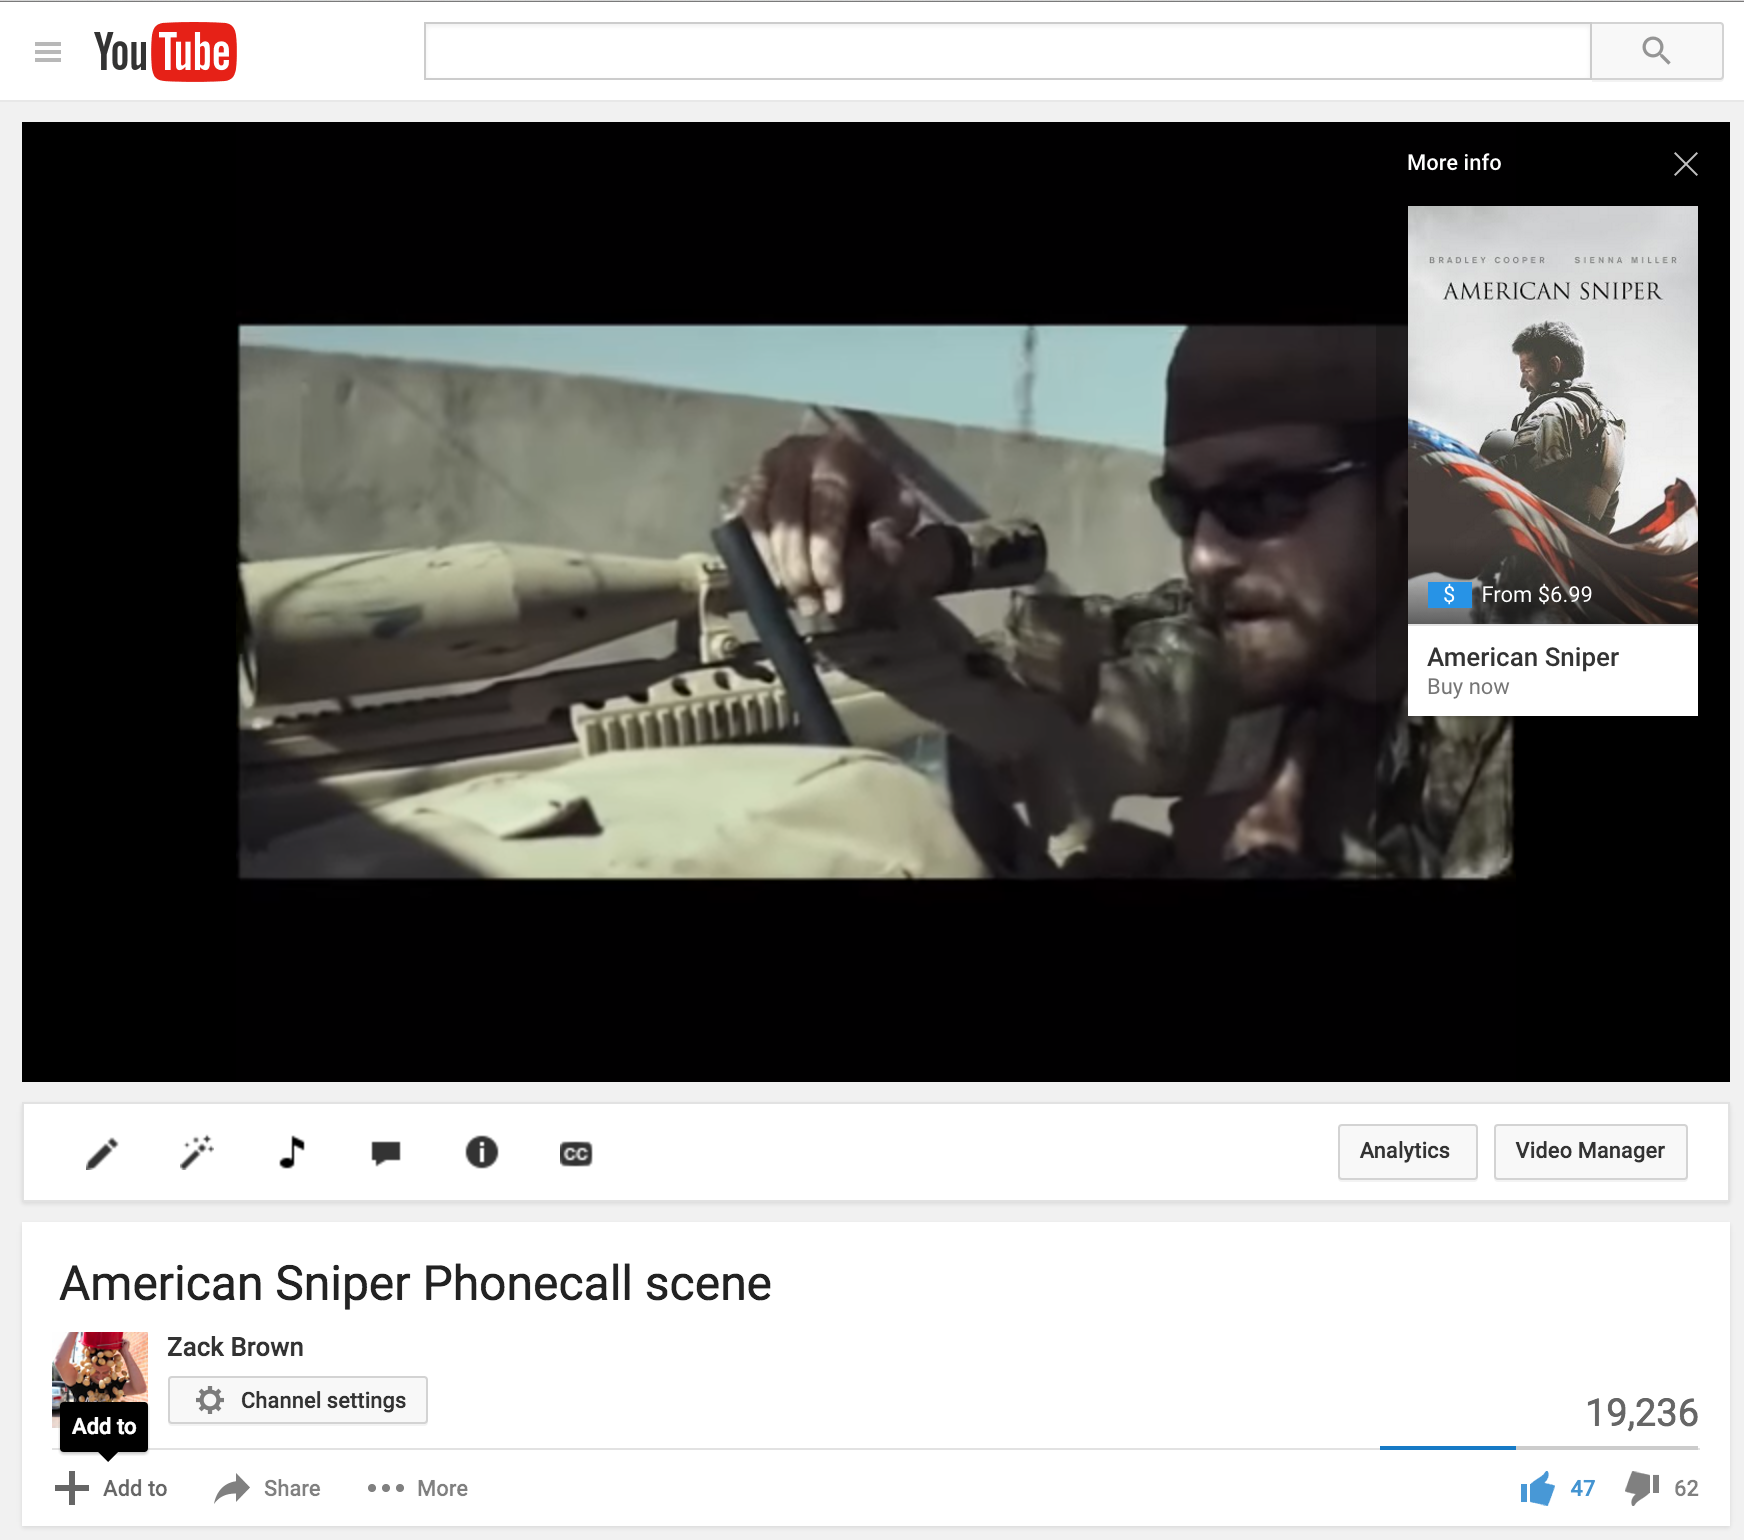 Business Insider Just Used My Badly Edited 'American Sniper